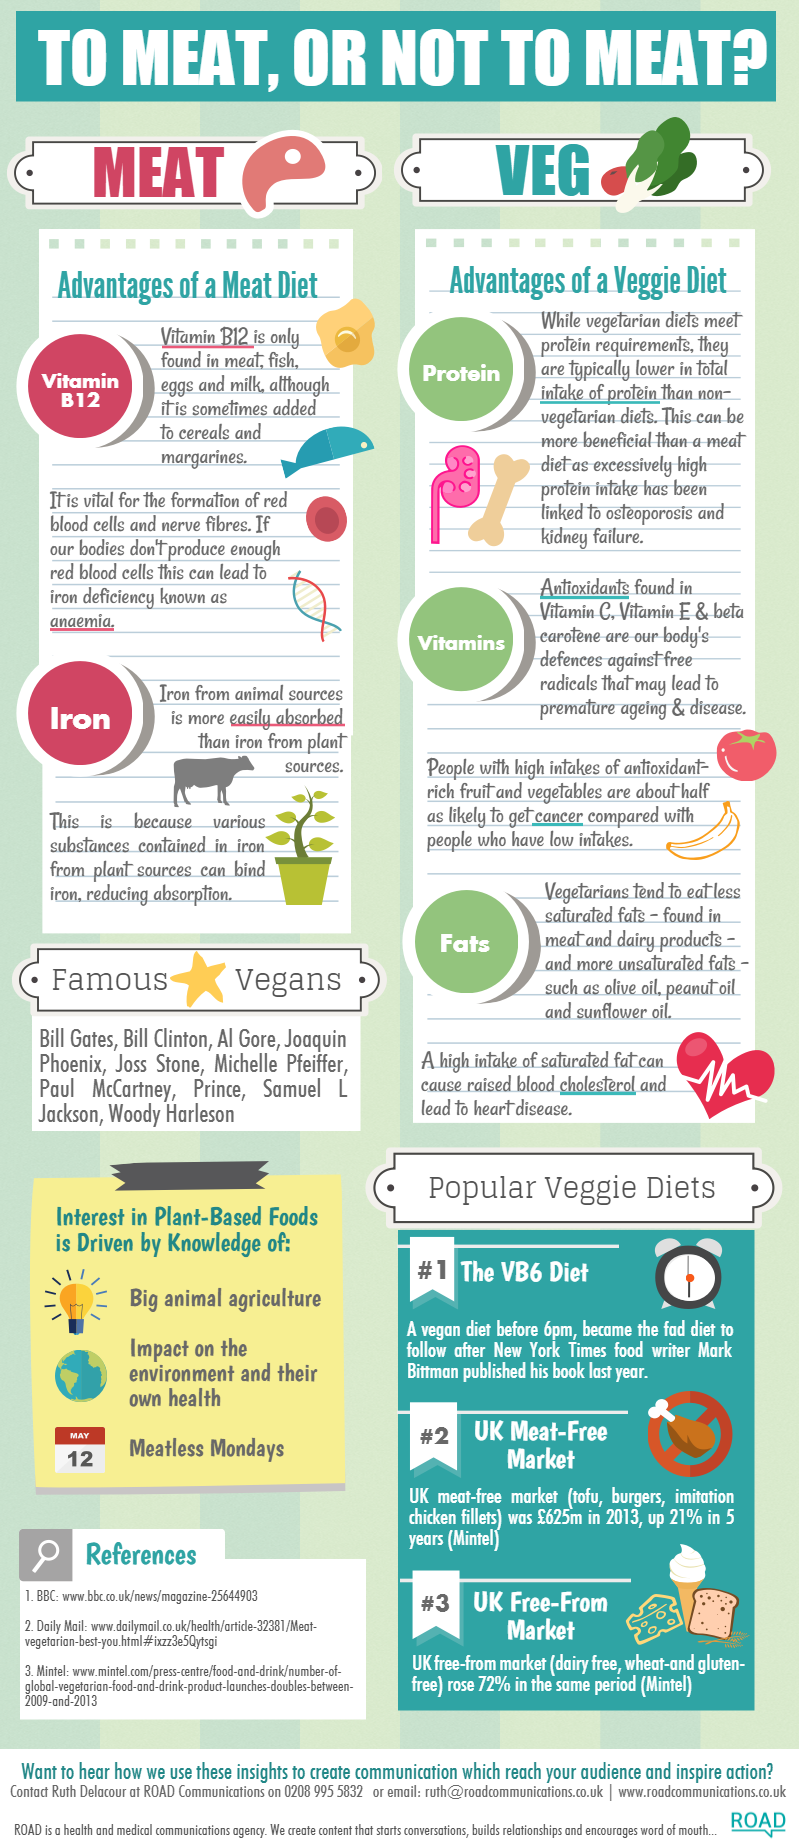 Meat VS Veg Diet infographic